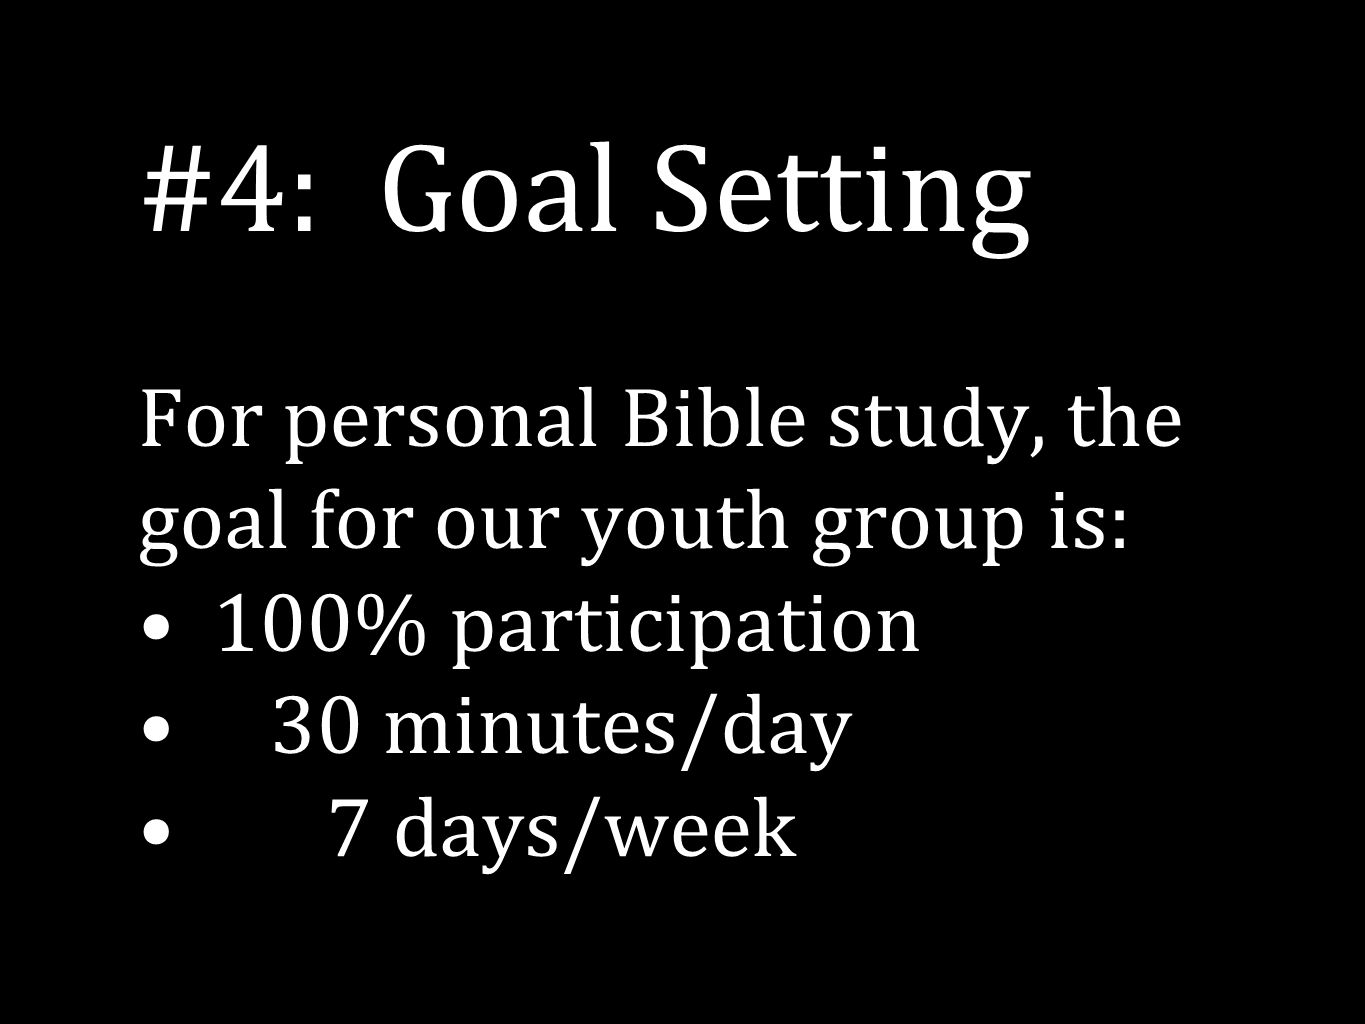 #4: Goal Setting For personal Bible study, the goal for our youth group is: 100% participation 30 minutes/day 7 days/week